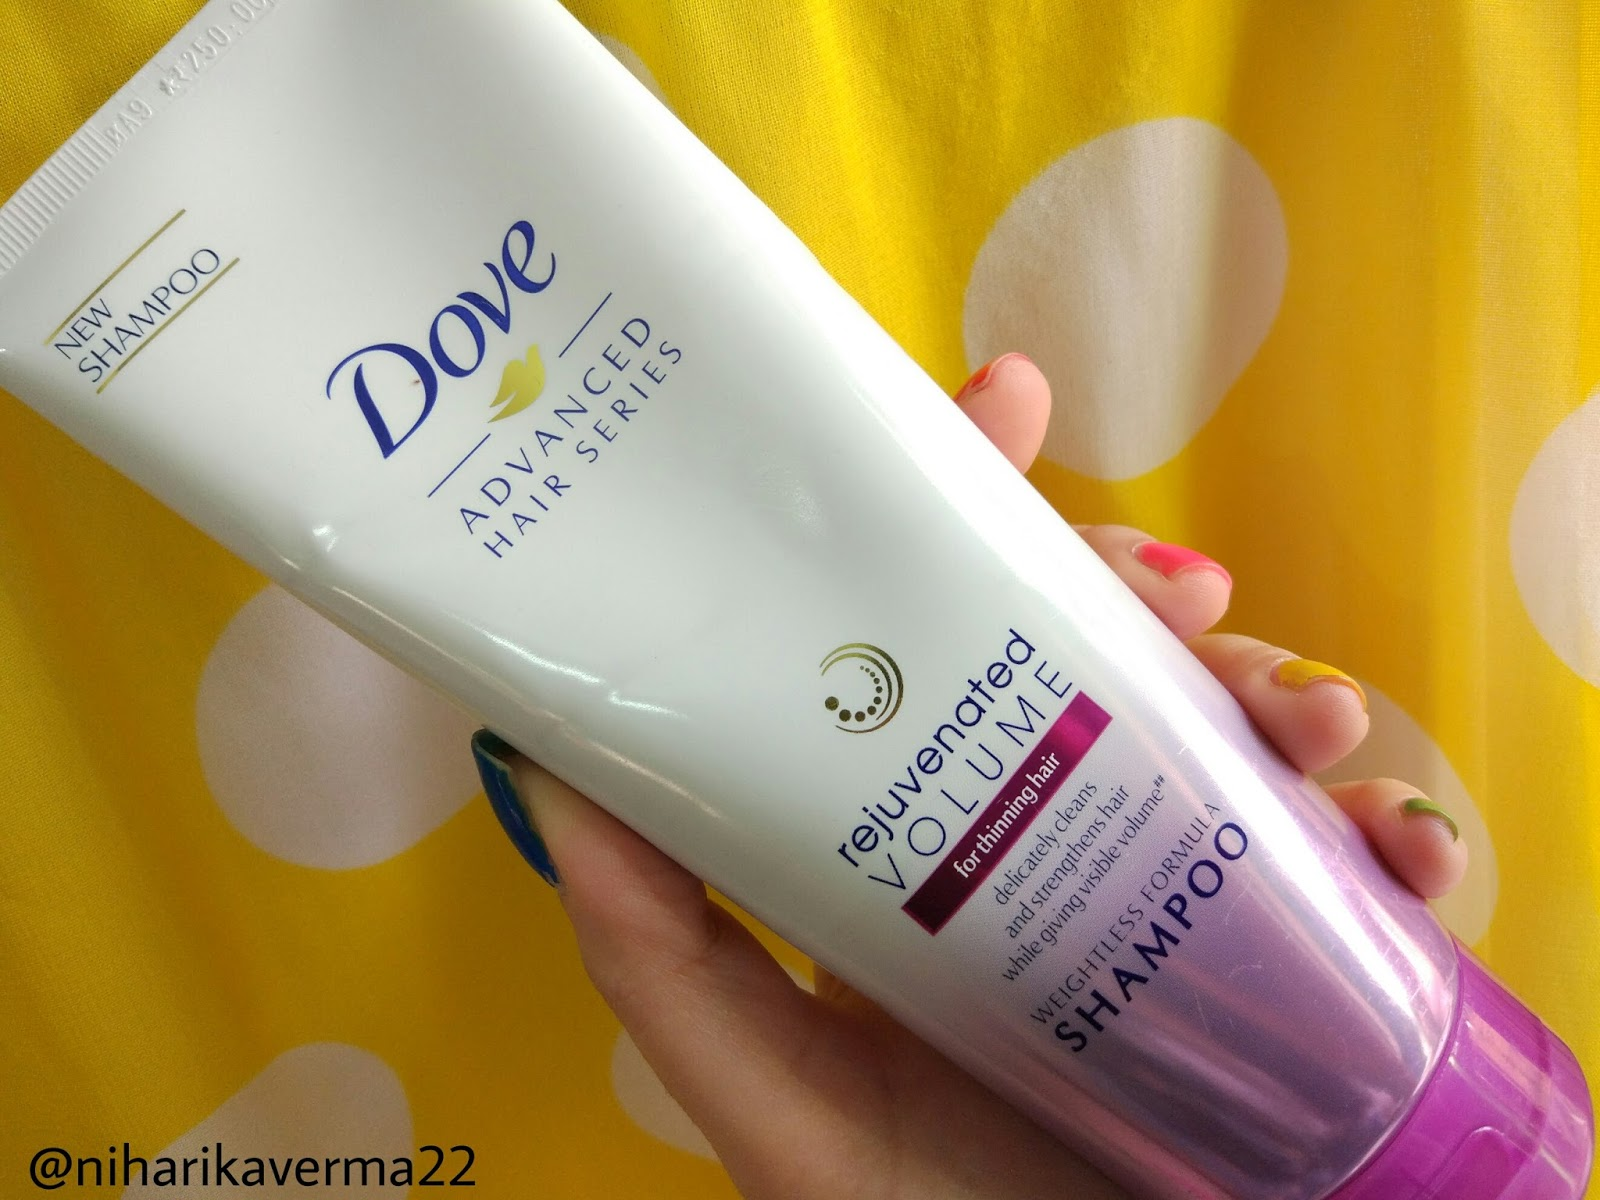 Dove Advanced Hair Series - Rejuvenated Volume Shampoo and Conditioner